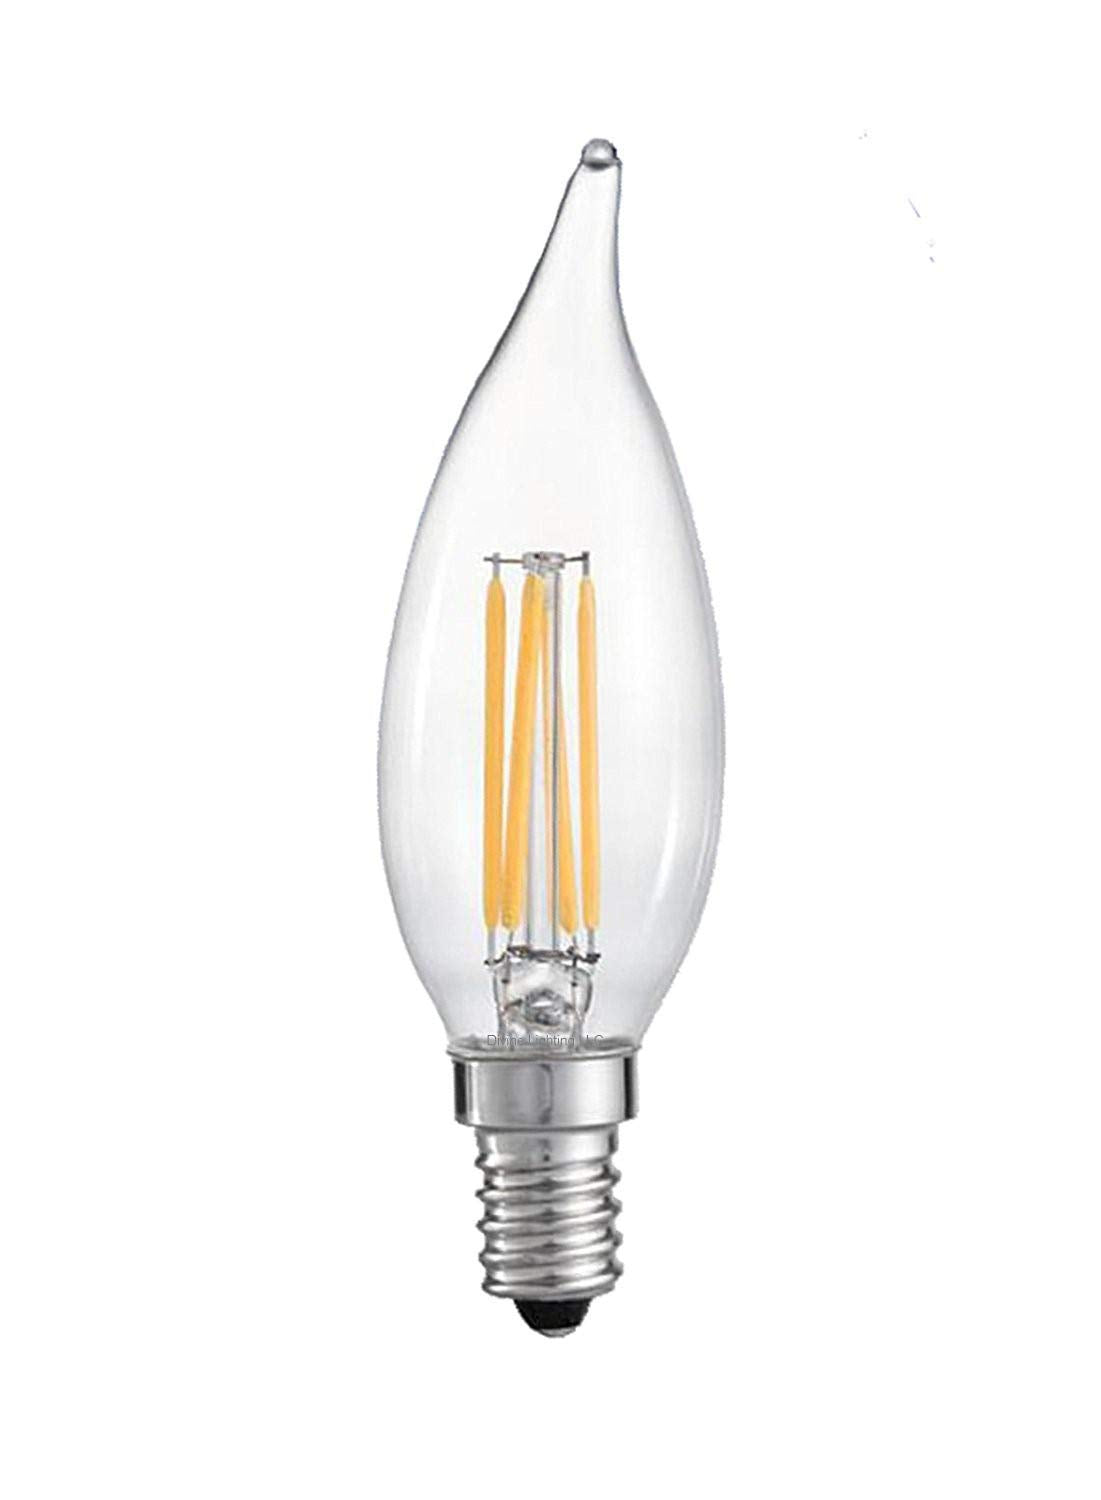 QPlus Edison Light Bulb B10 Twist Candelabra